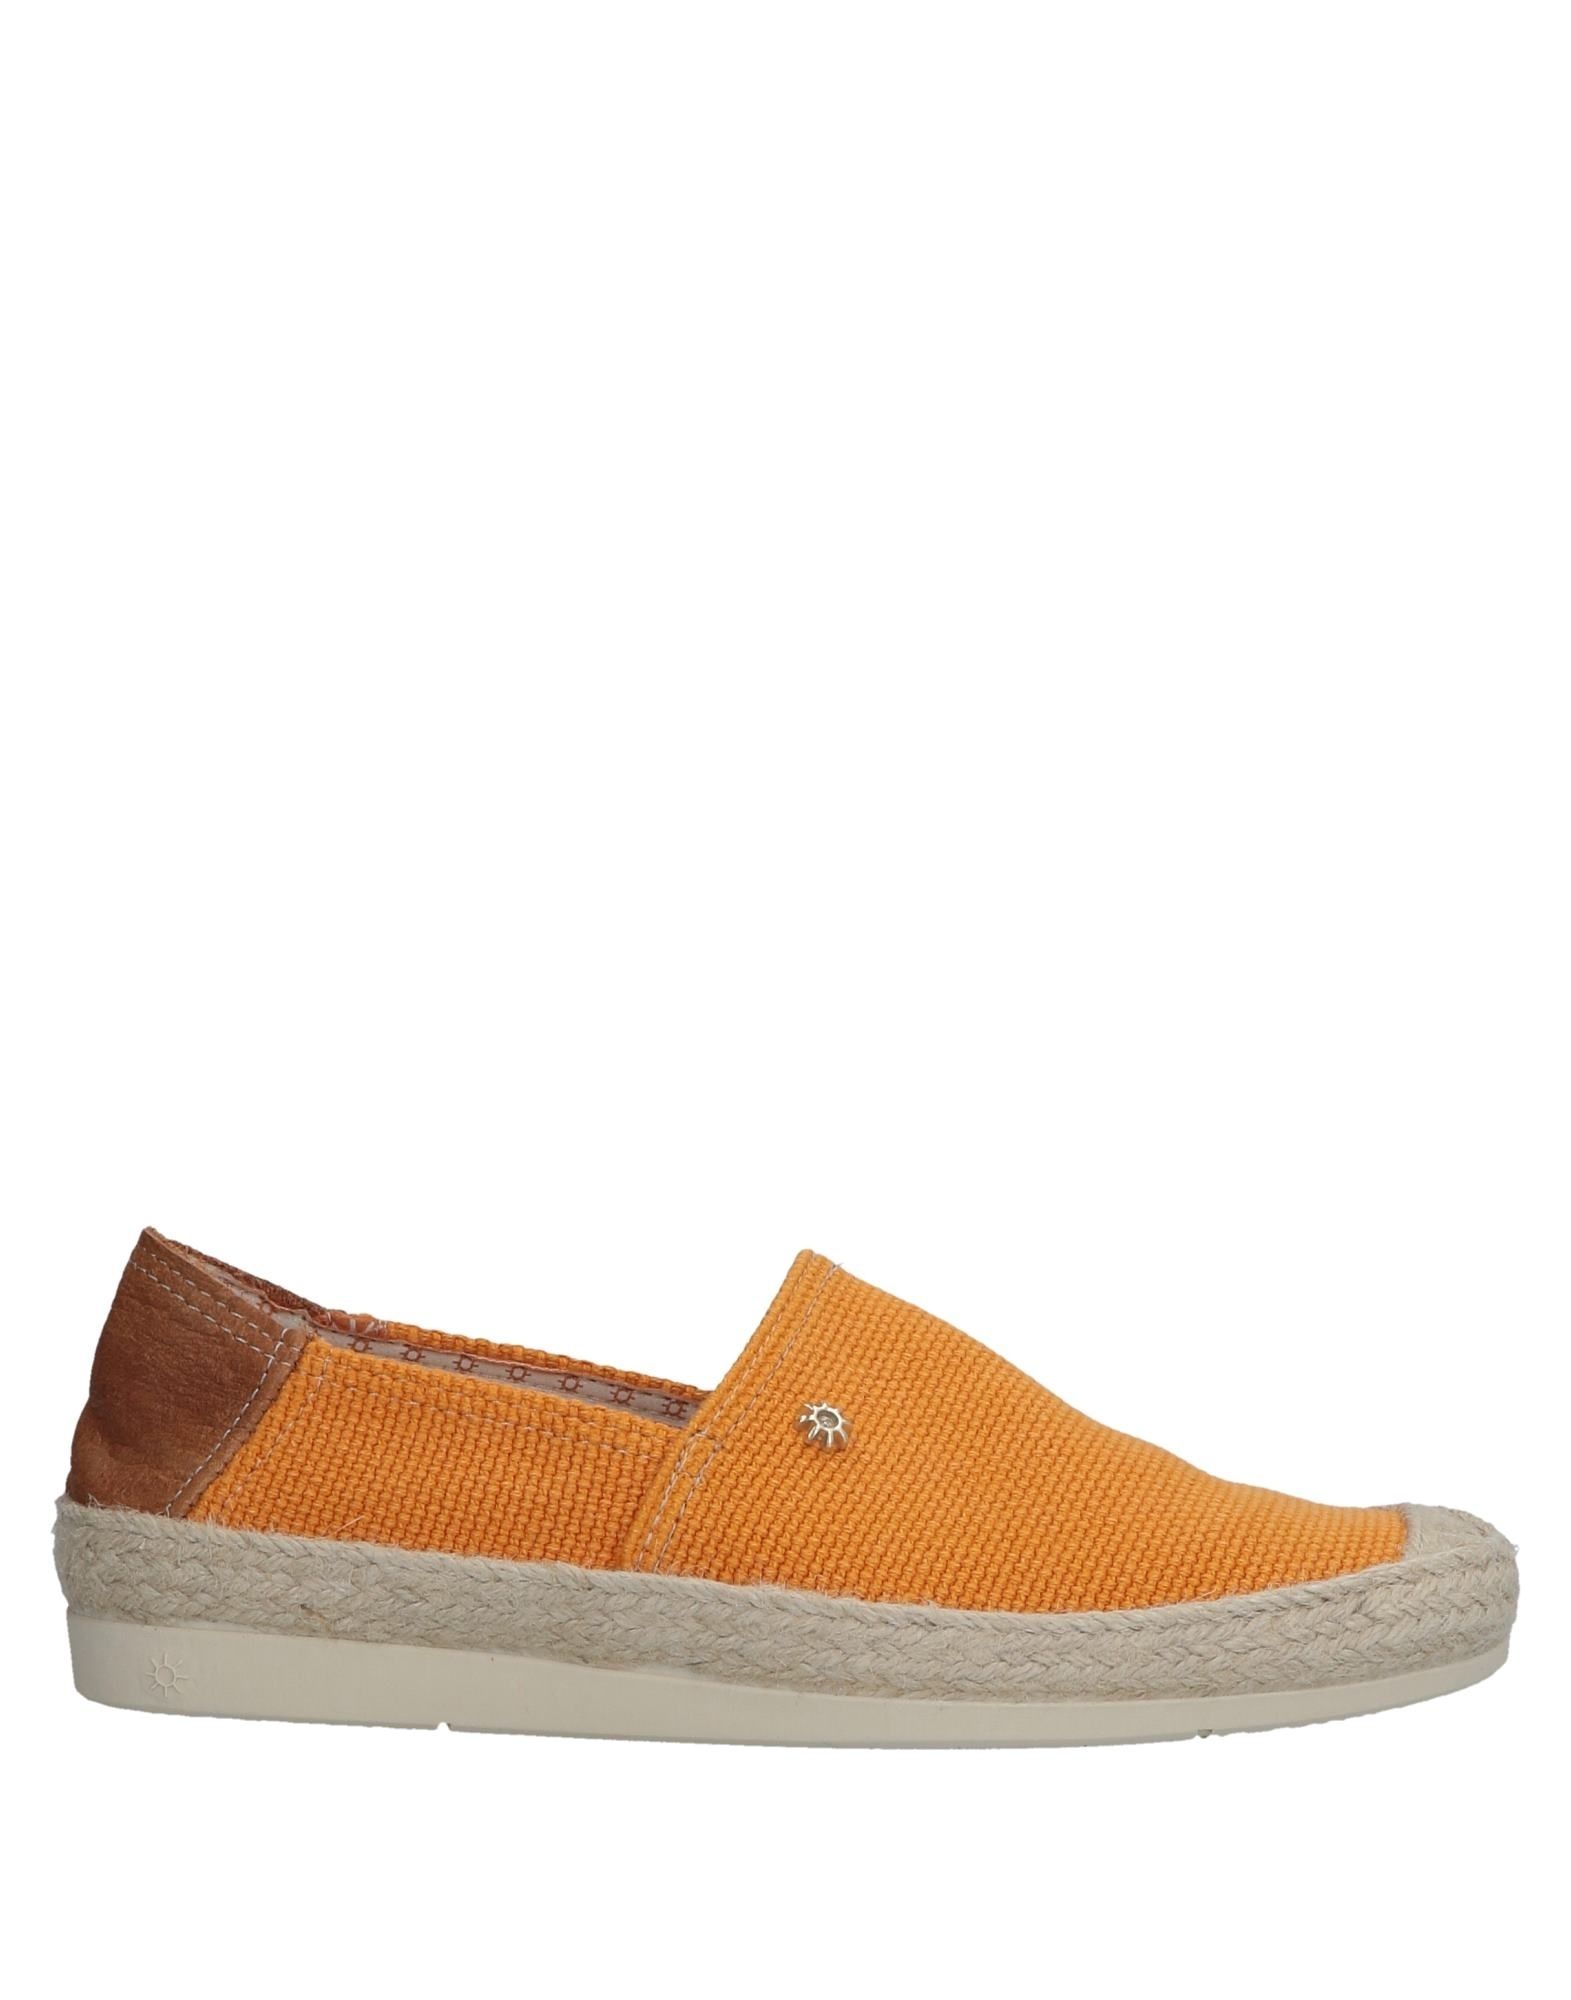 LA SIESTA Damen Espadrilles7 orange